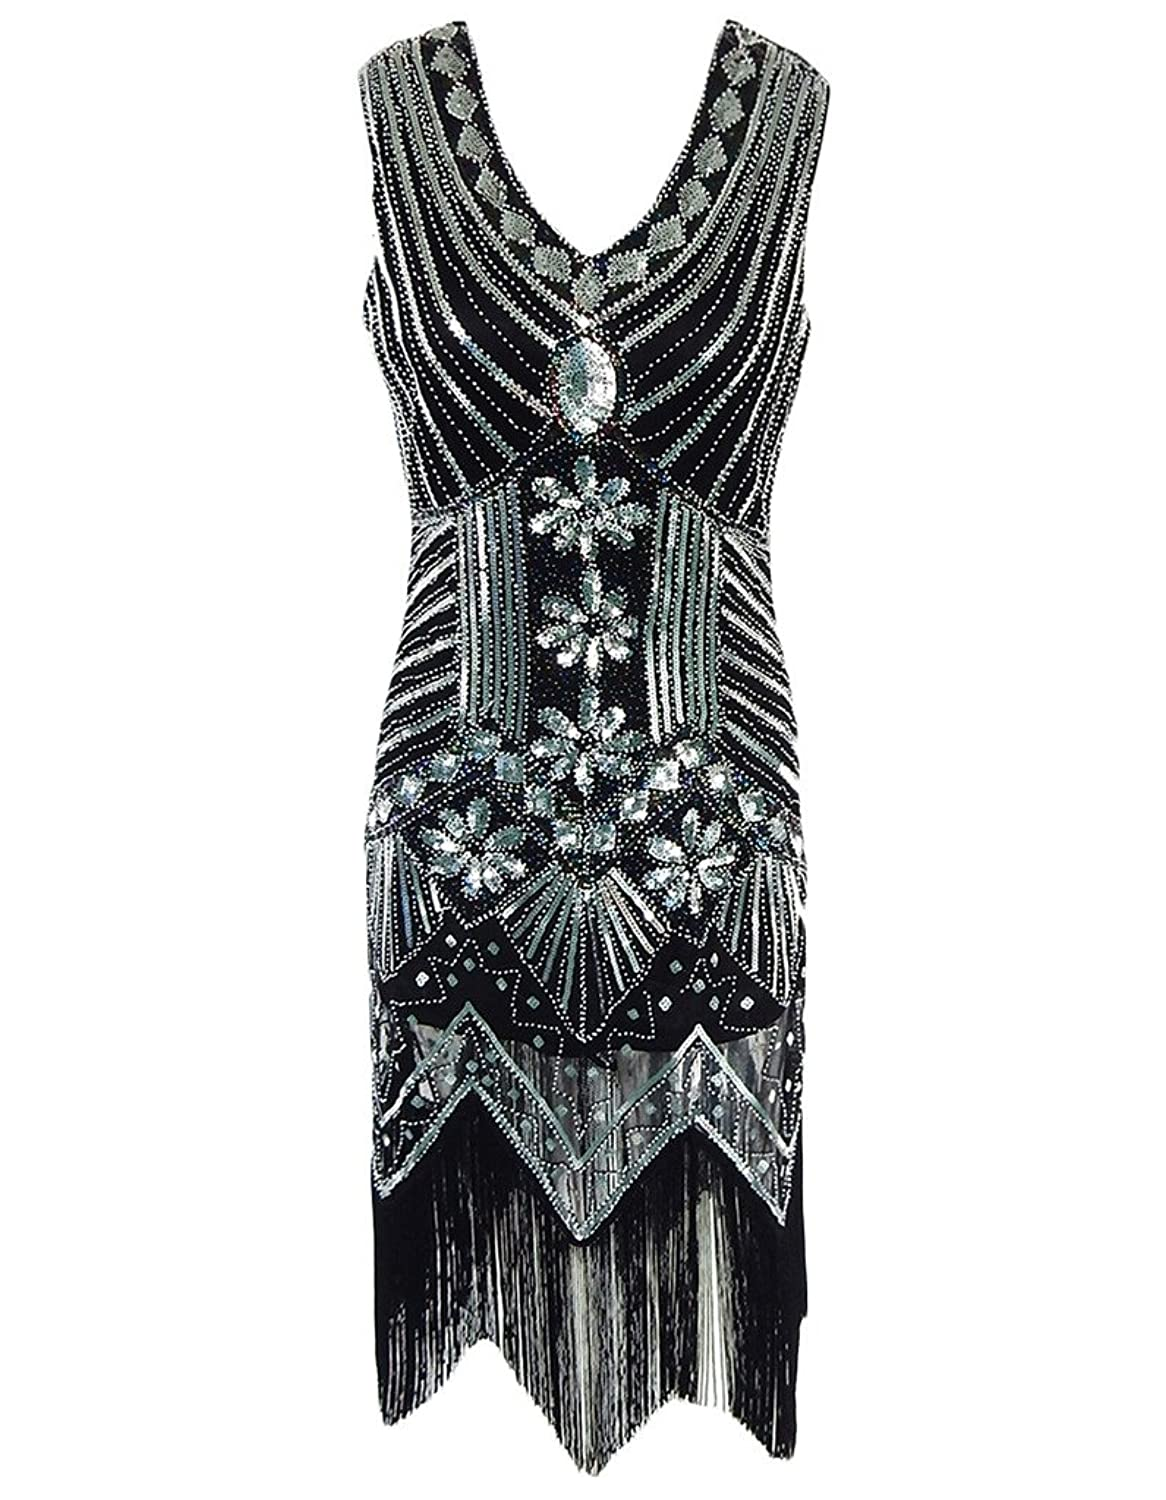 OOFIT Womens Flapper Dress, Vintage Art Deco Sequin Inspired Gatsby Dresses